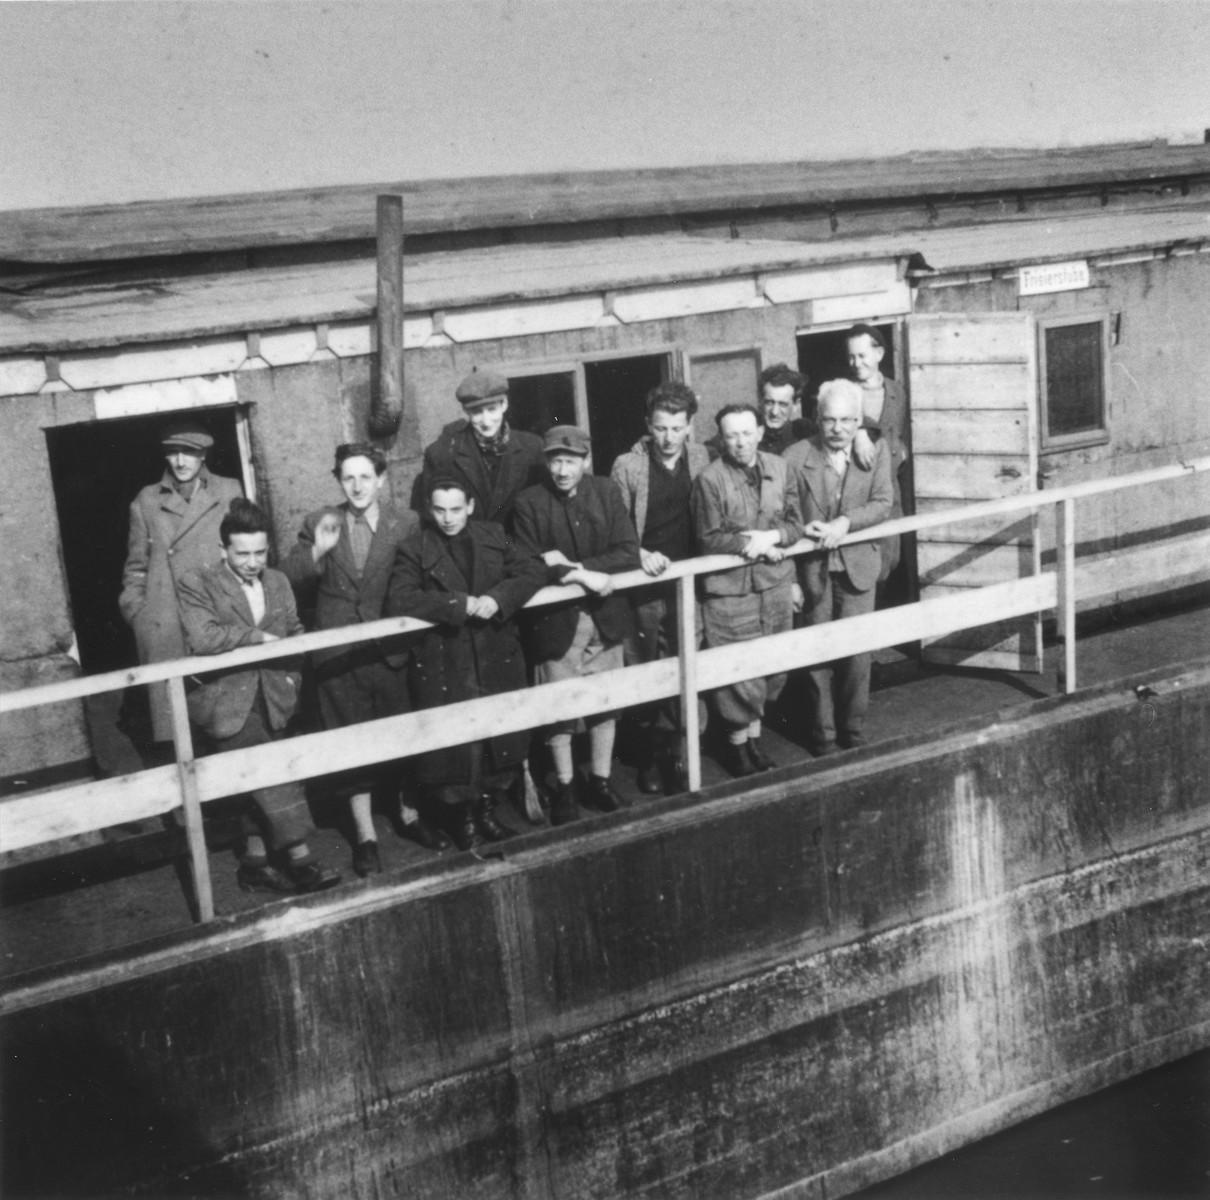 Jewish refugees who are members of the Kladova transport, stand on the deck of a barge in the port of Kladova.  Among those pictured is Walter Fink, the uncle of the donor.